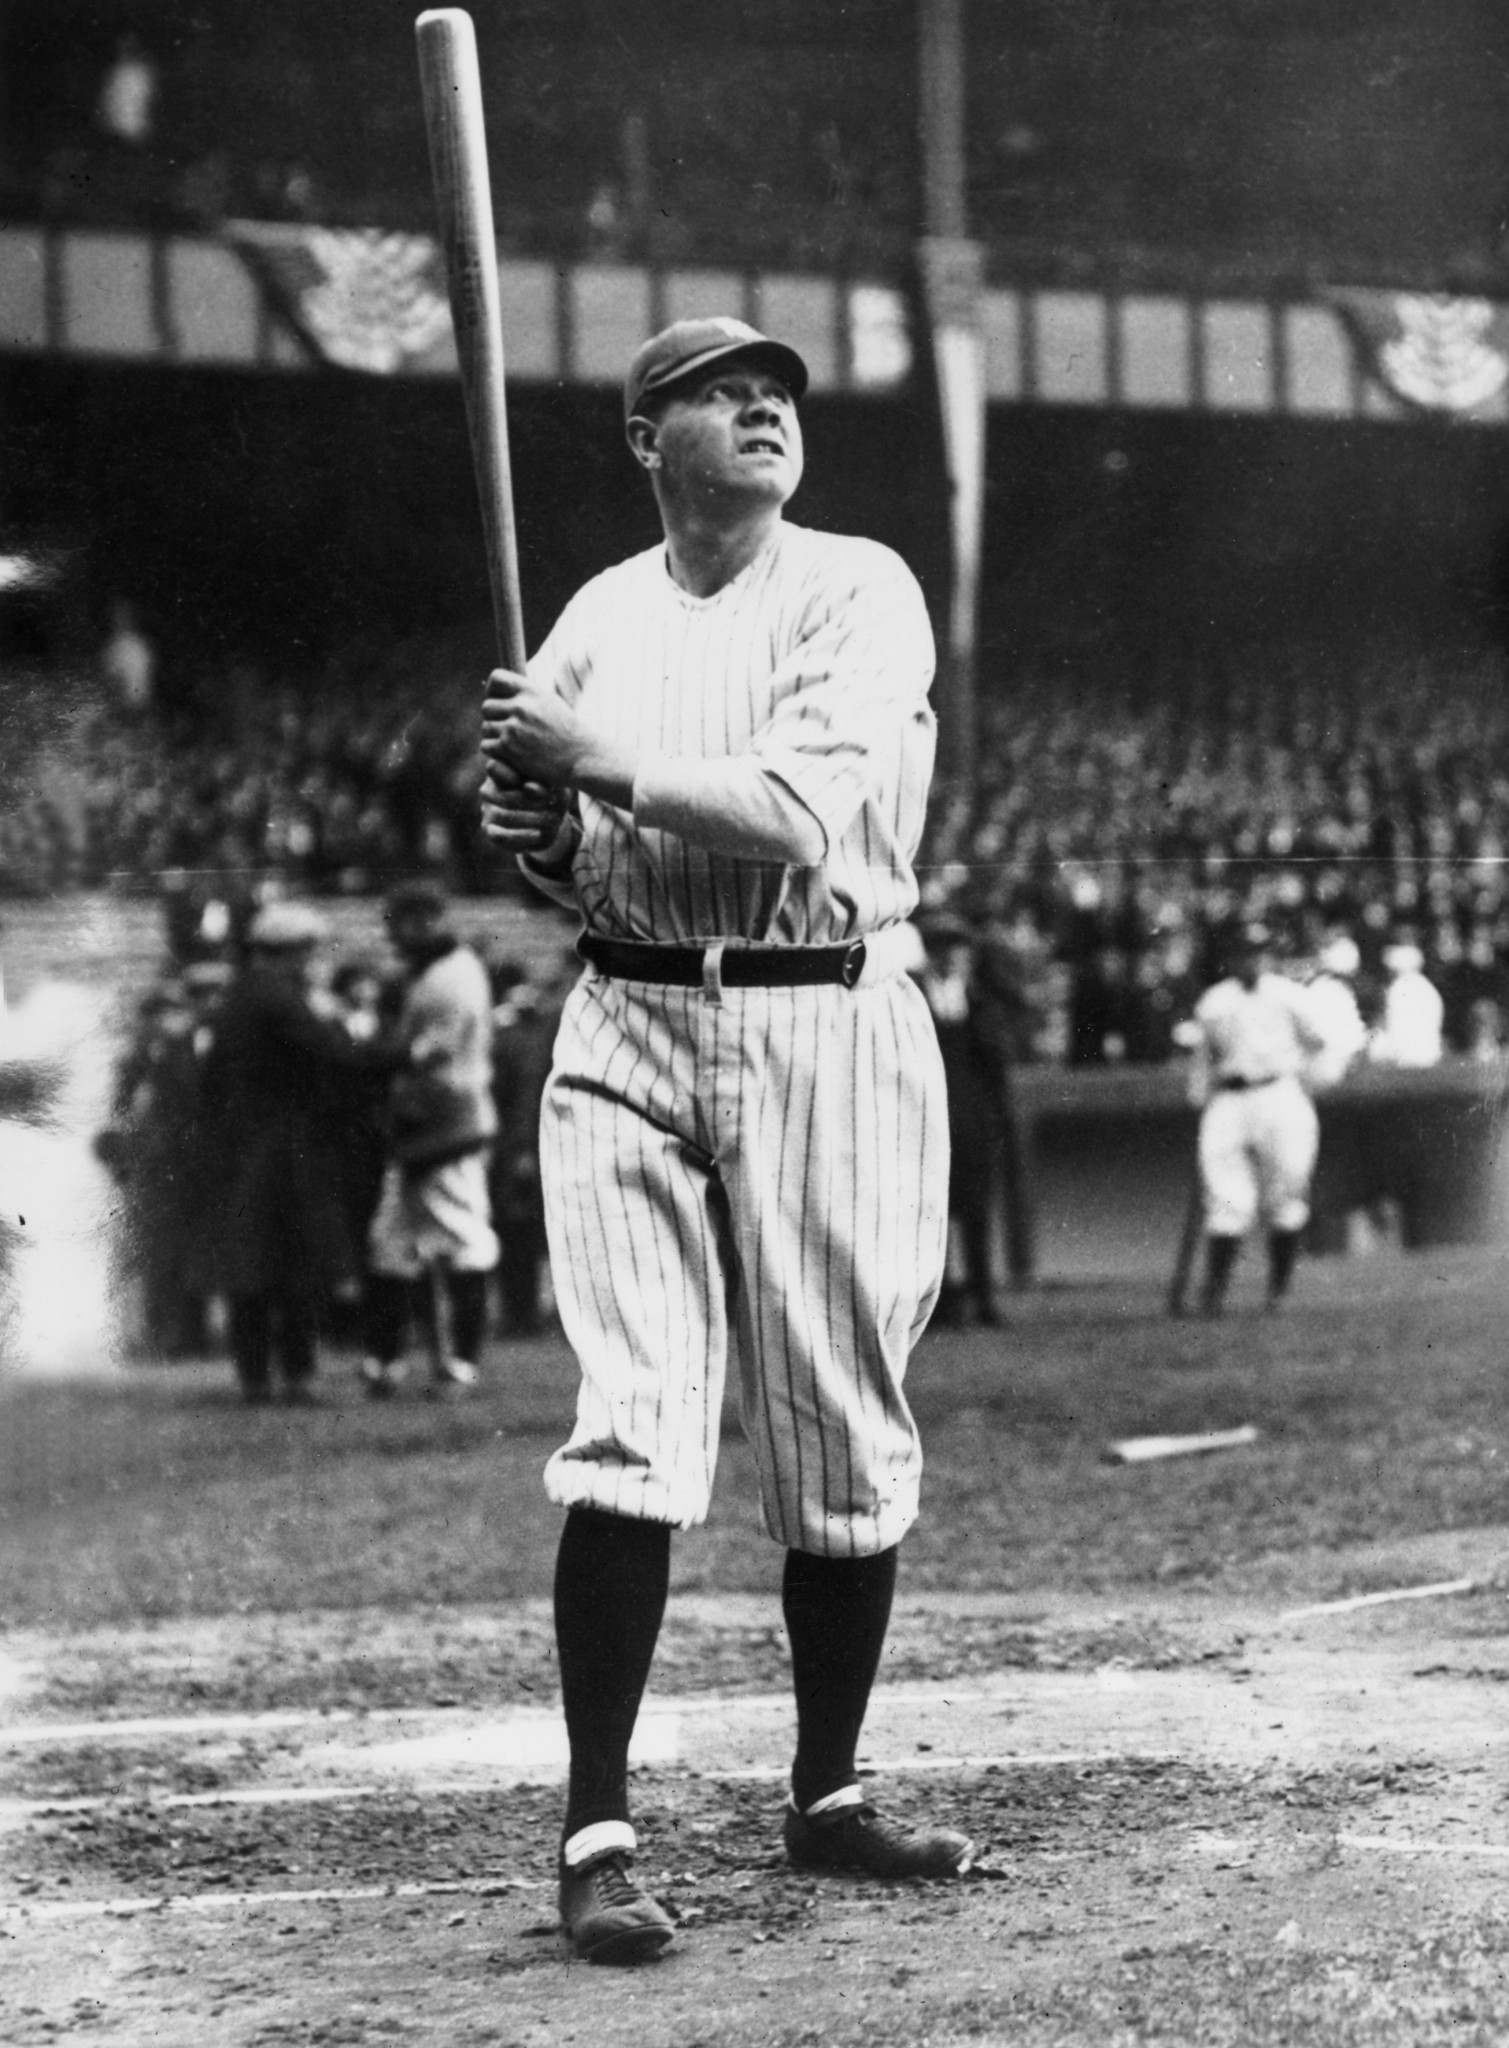 In 1999, Michael Jordan was named the 20th century's greatest North American athlete by ESPN and was second to Babe Ruth, pictured, on the Associated Press list of athletes of the century ©Getty Images